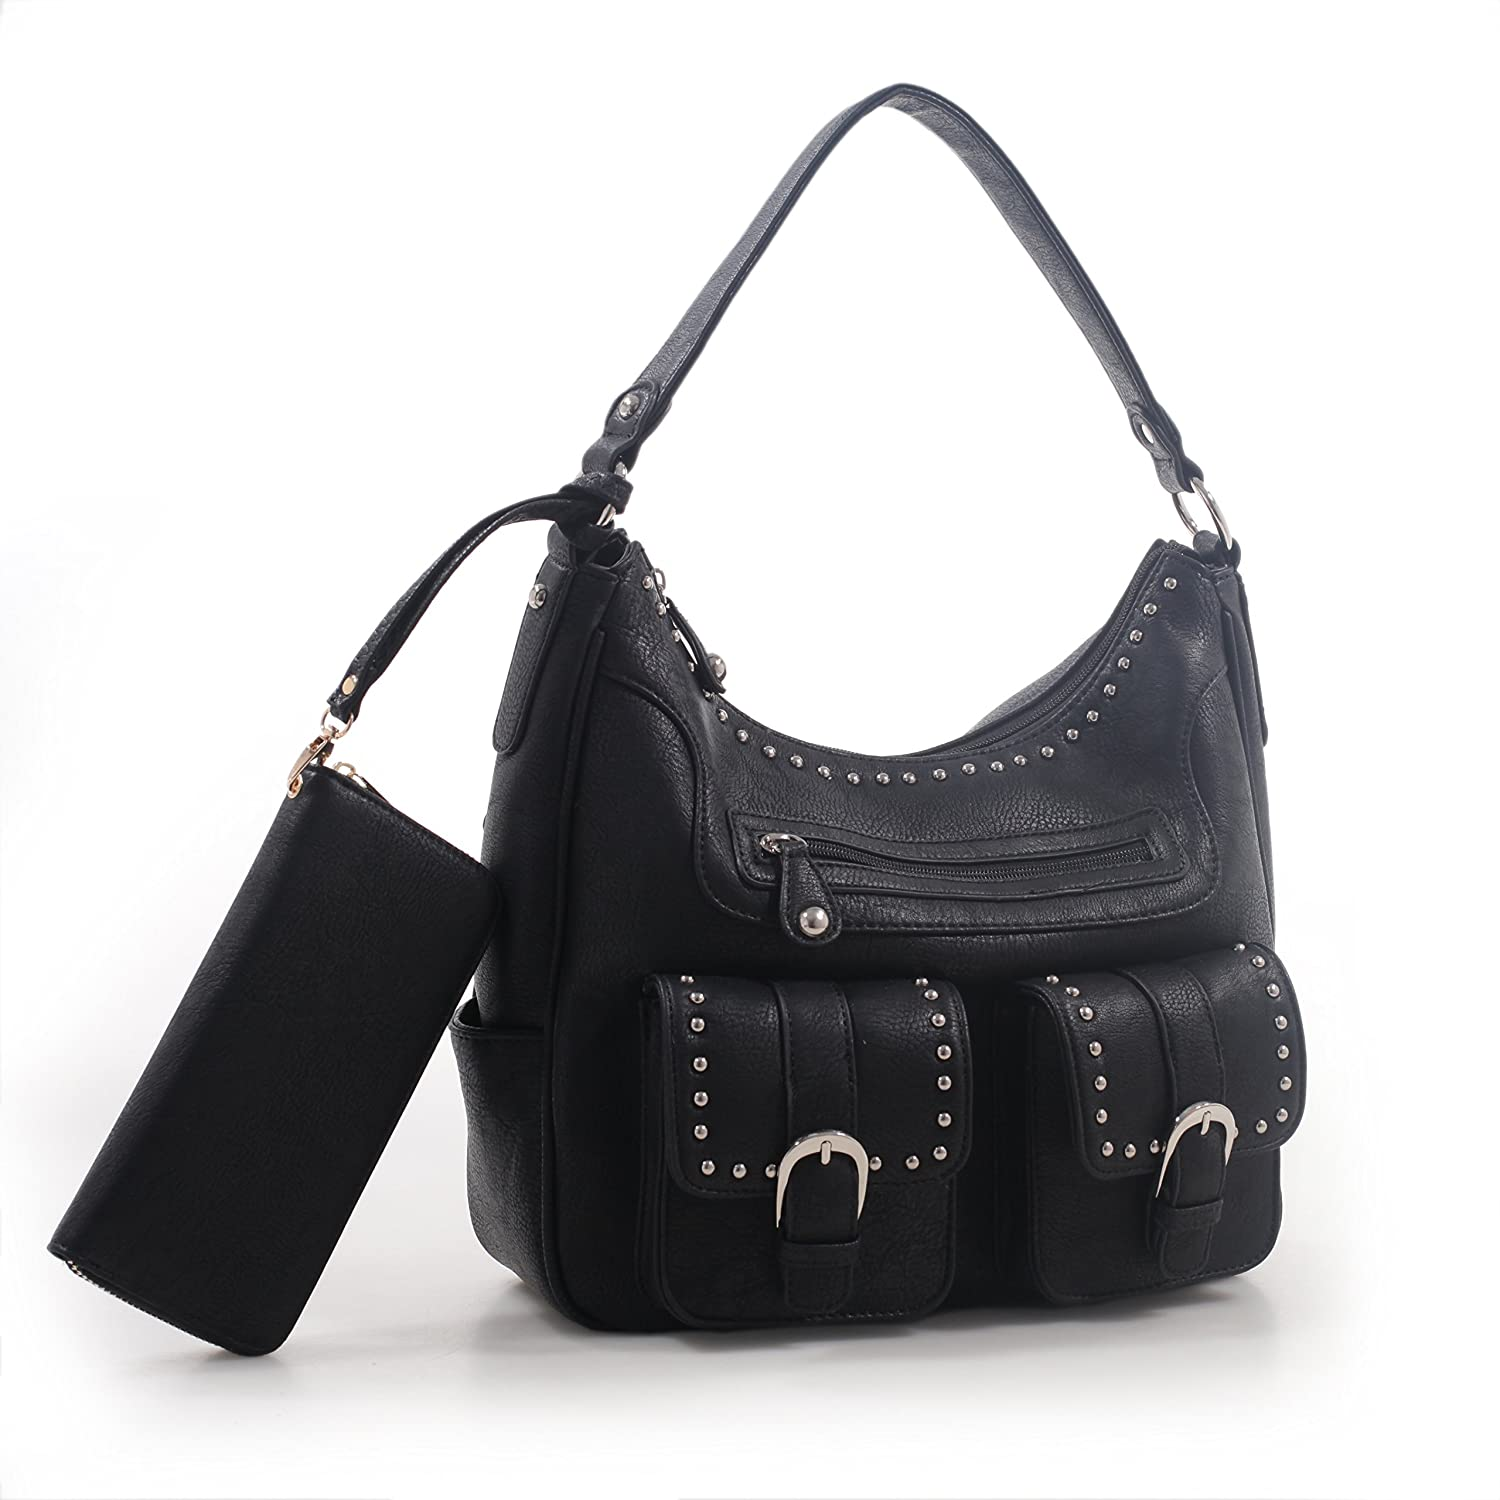 Emperia Roxie Dual Buckle Concealed Carry Hobo Bag and Wristlet